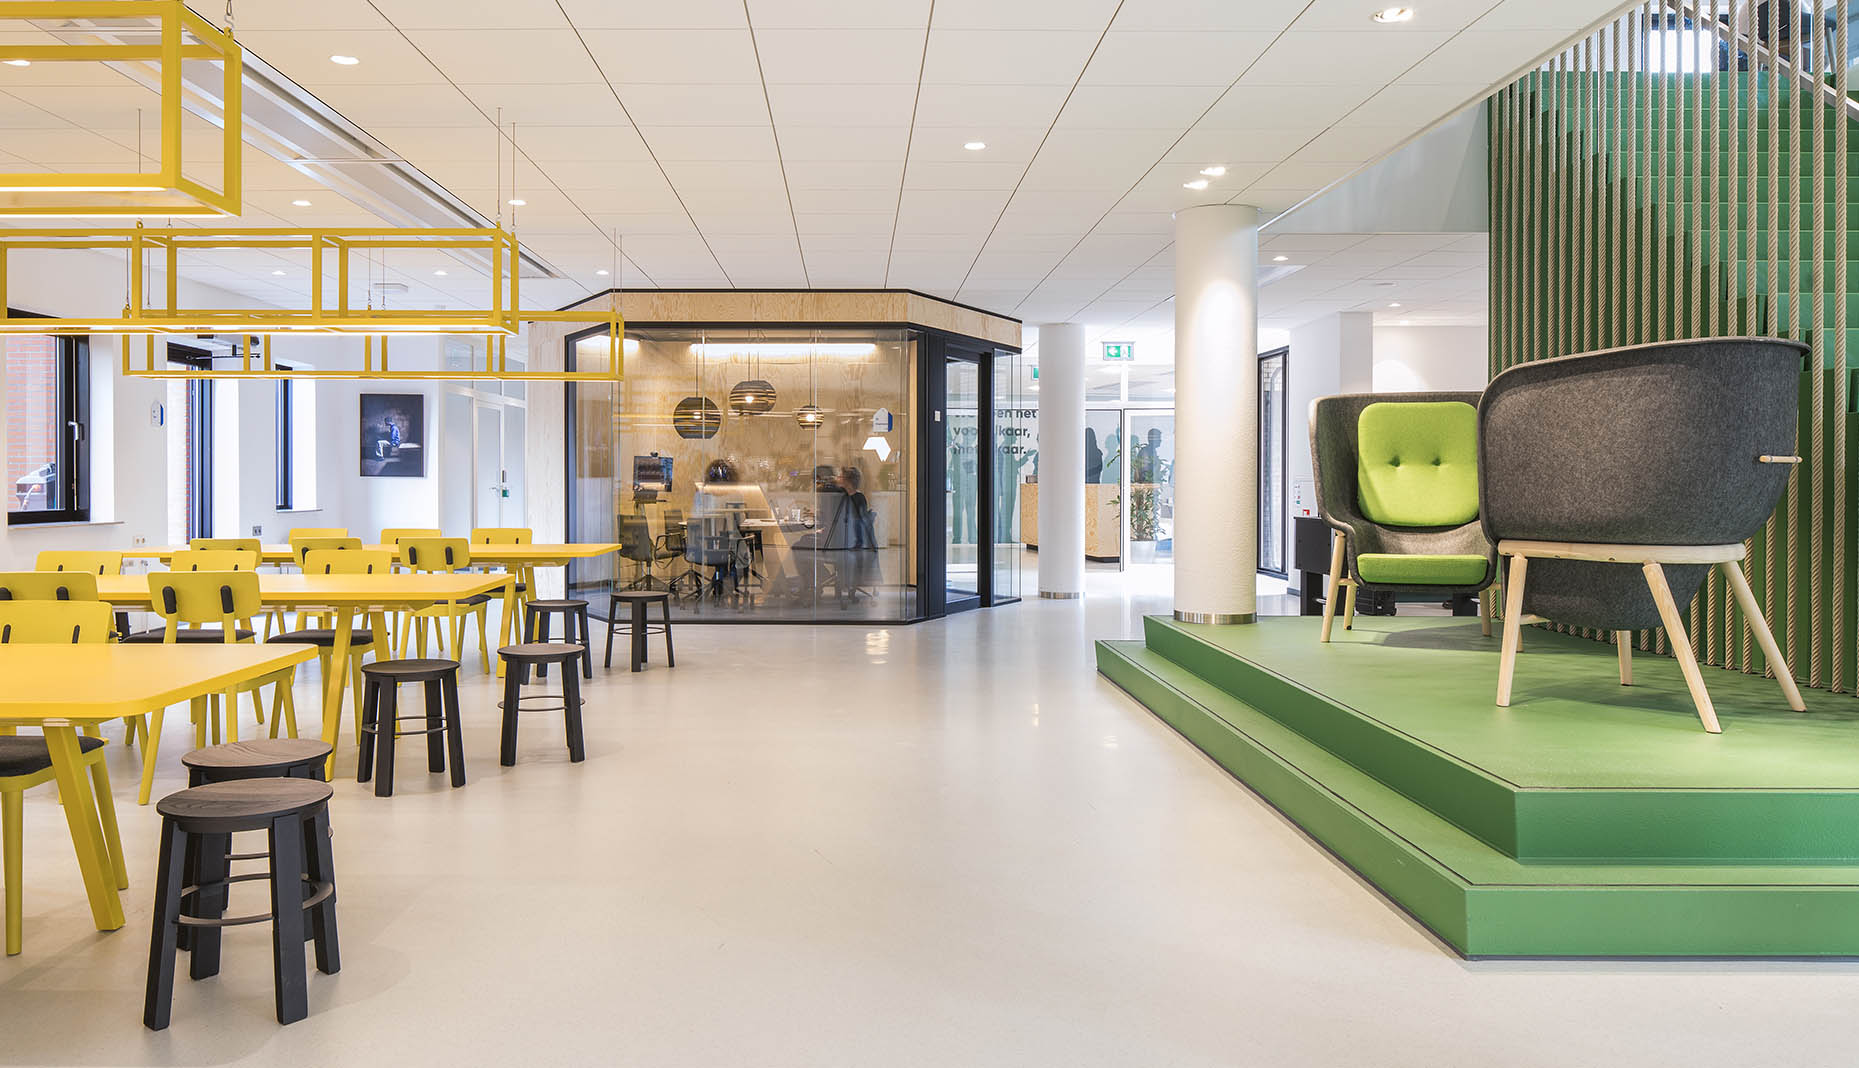 De Vorm for Office | Flexible Workplace Design: the Open Office, Cubicle and Beyond